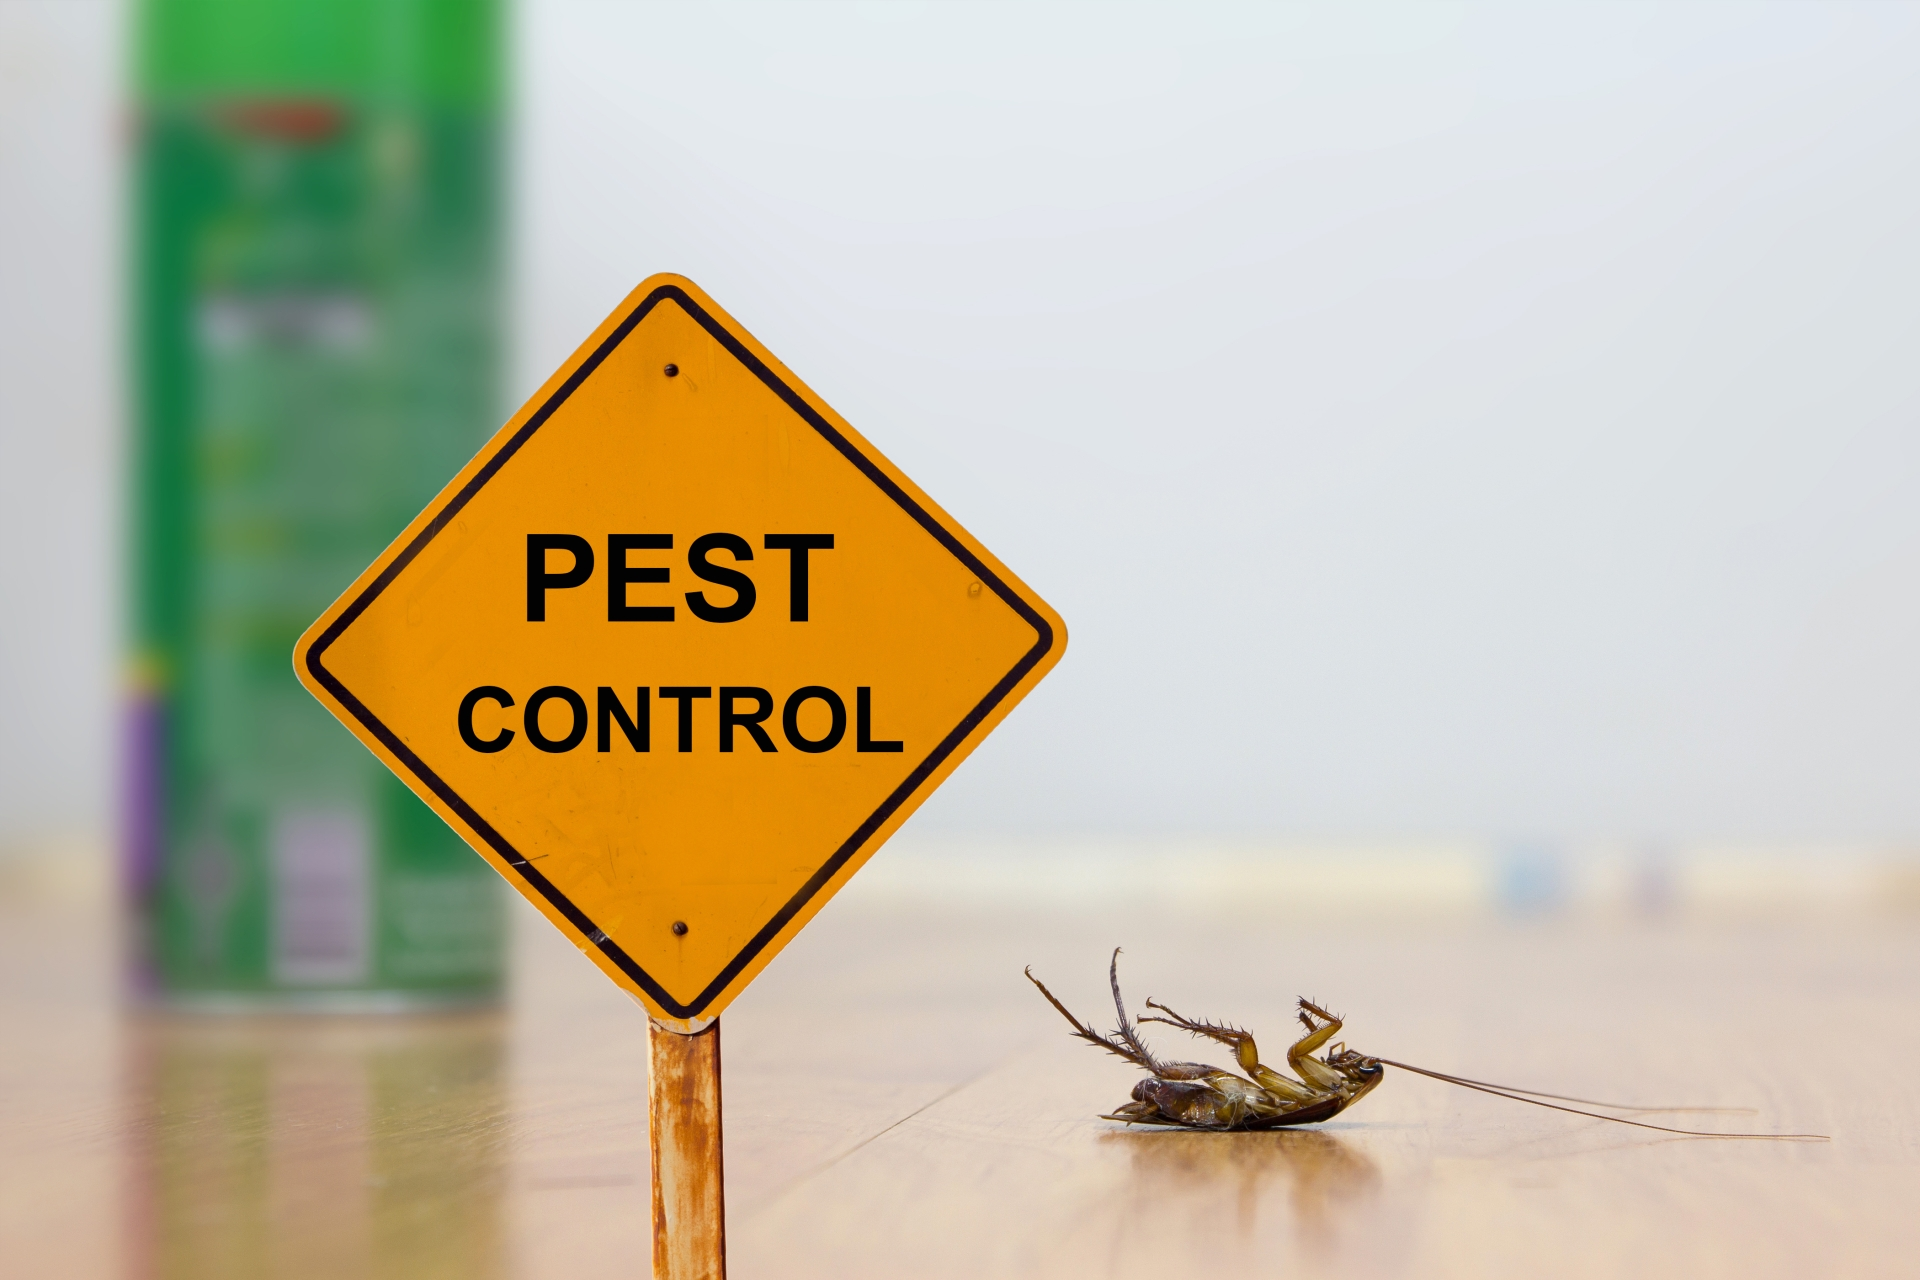 24 Hour Pest Control, Pest Control in South Lambeth, SW8. Call Now 020 8166 9746